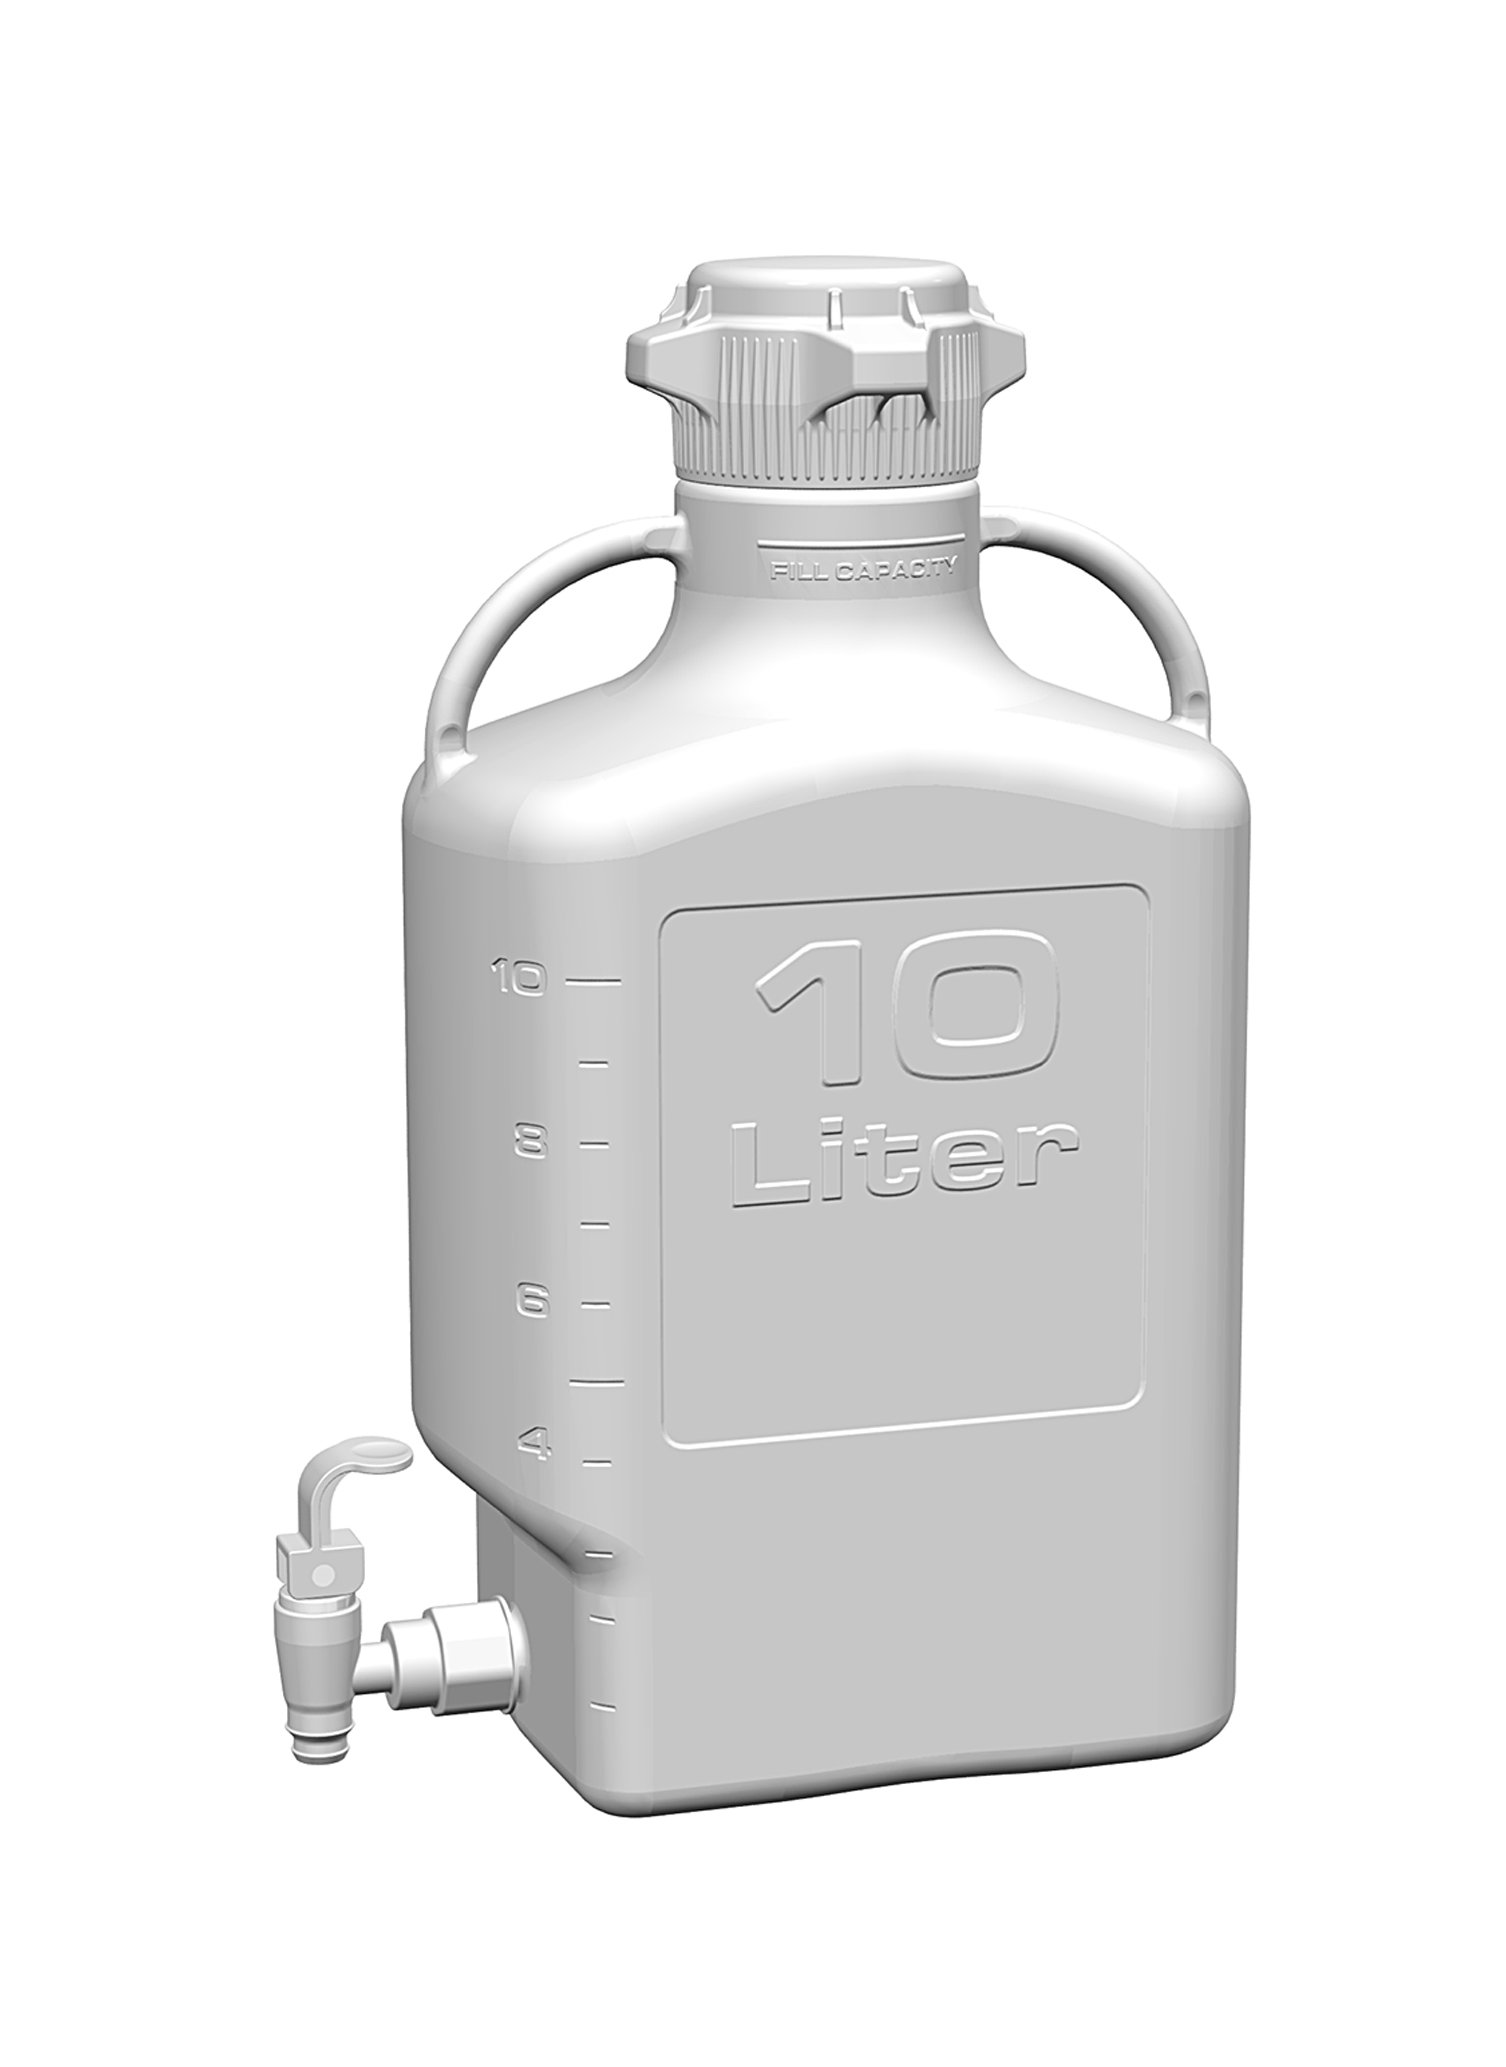 EZgrip 10L (2.5 Gal) HDPE Space Saving Carboy with Leakproof Spigot, 83mm (83B) VersaCap and 13L Max Capacity